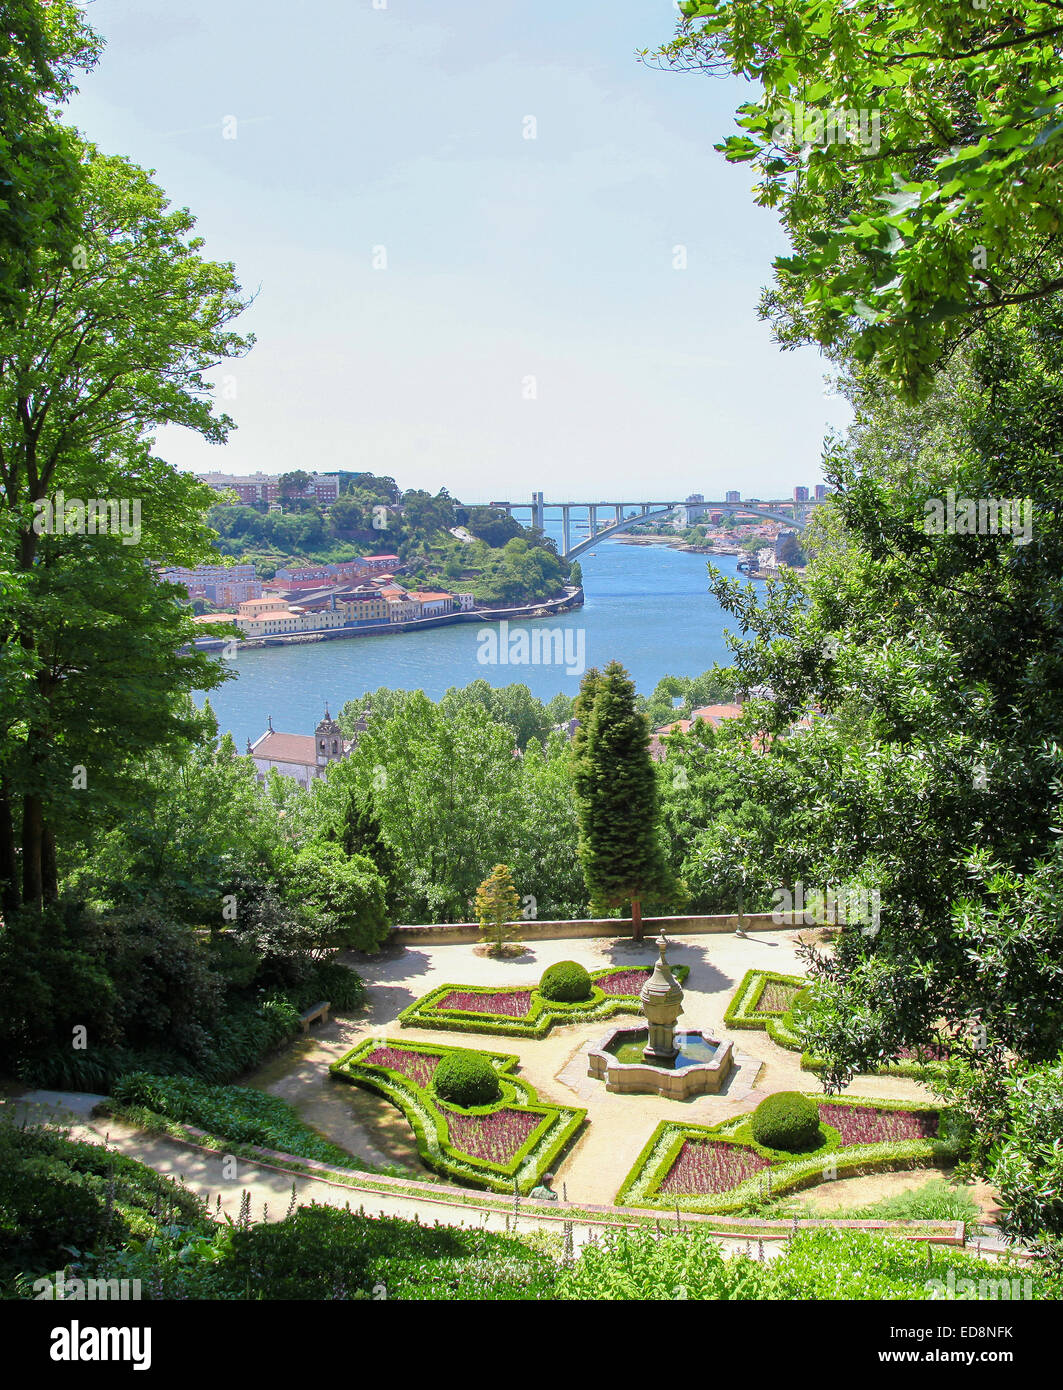 View on the center of Porto by the river Douro in Portugal. - Stock Image